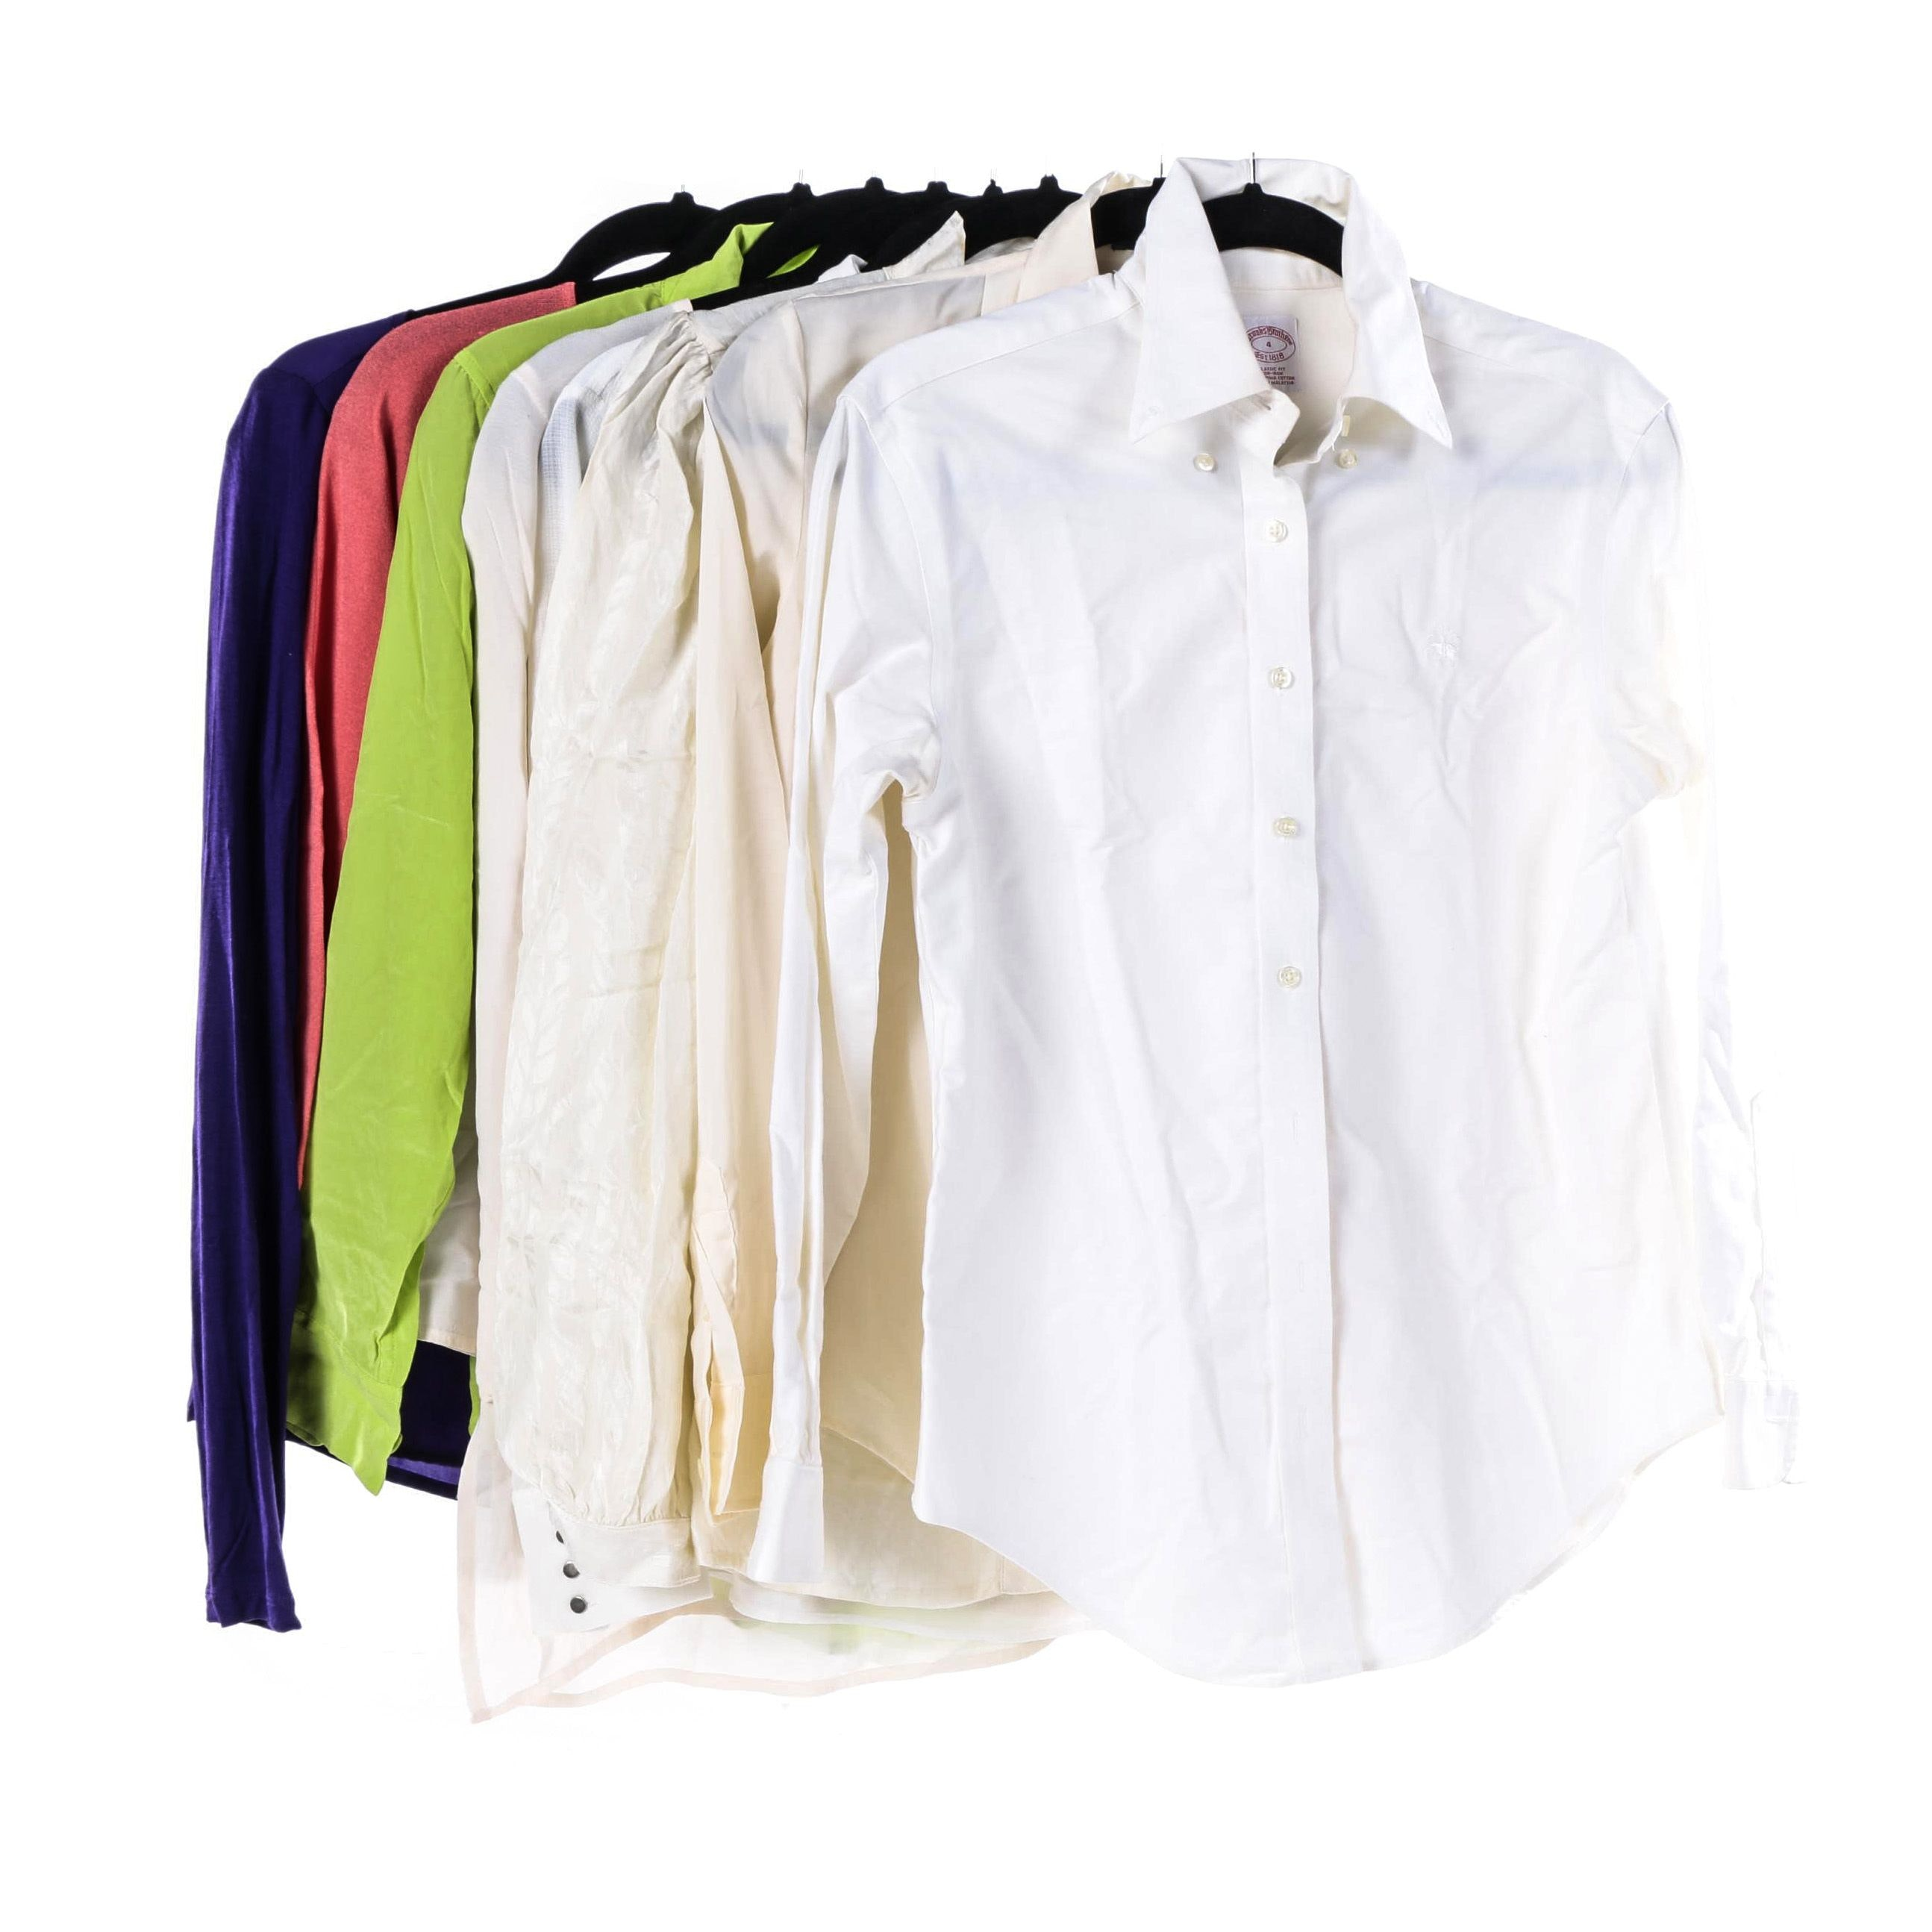 Women's Shirts and Blouses Including Lauren Ralph Lauren